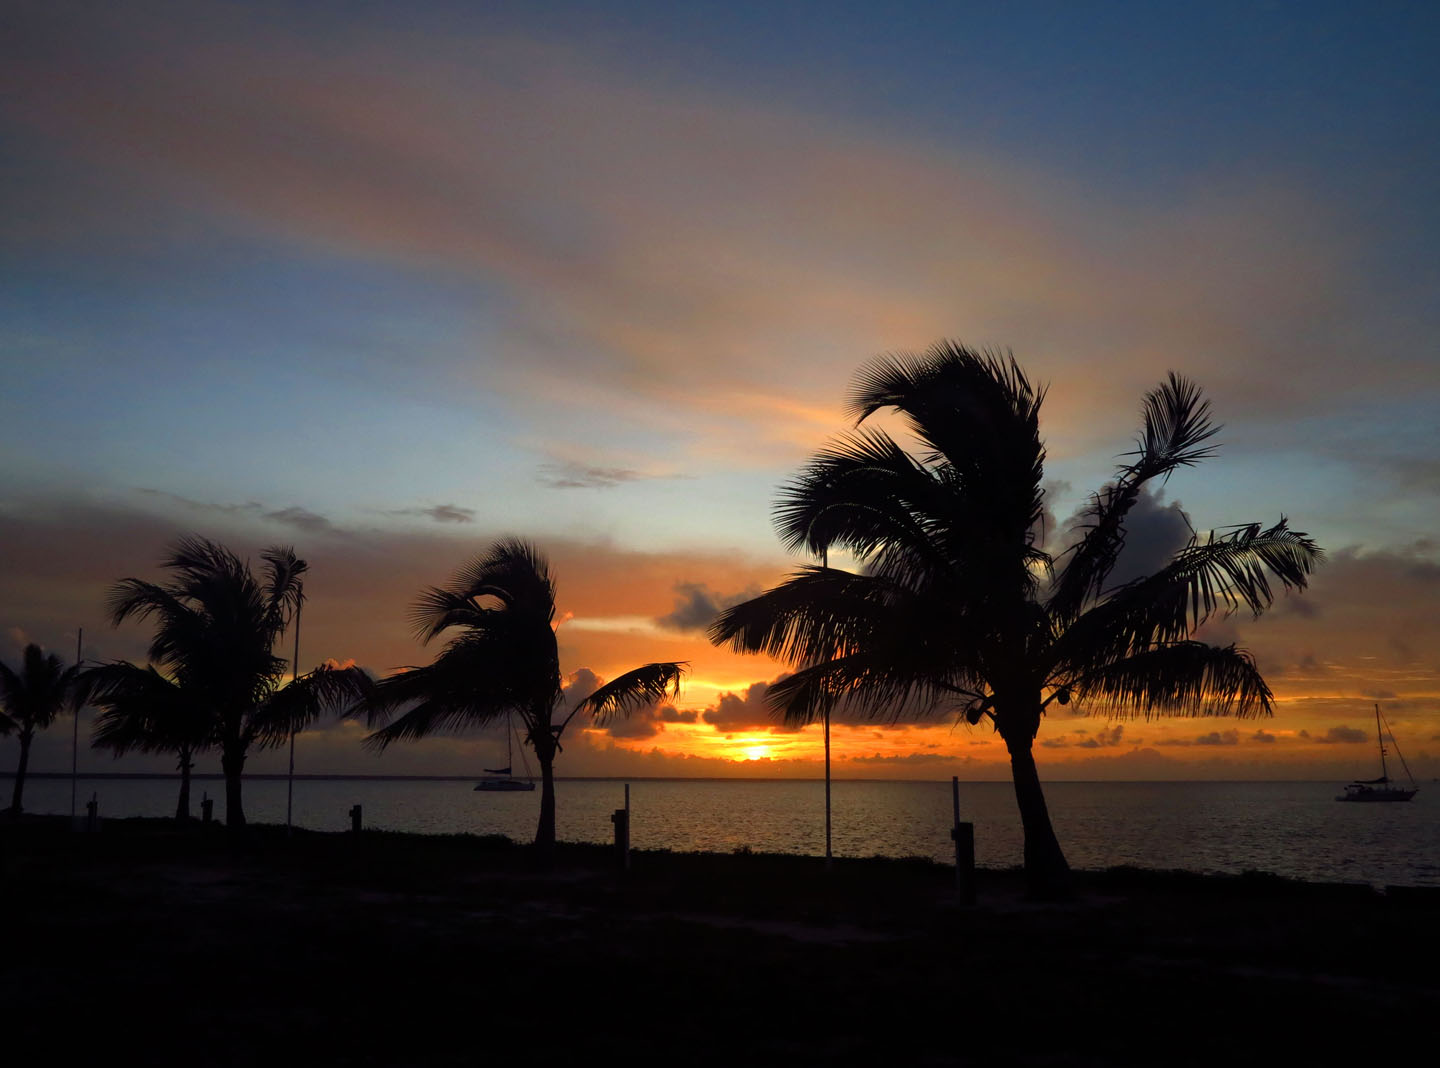 Sunset from Heritage Park at Settlement Point, Green Turtle Cay, Bahamas